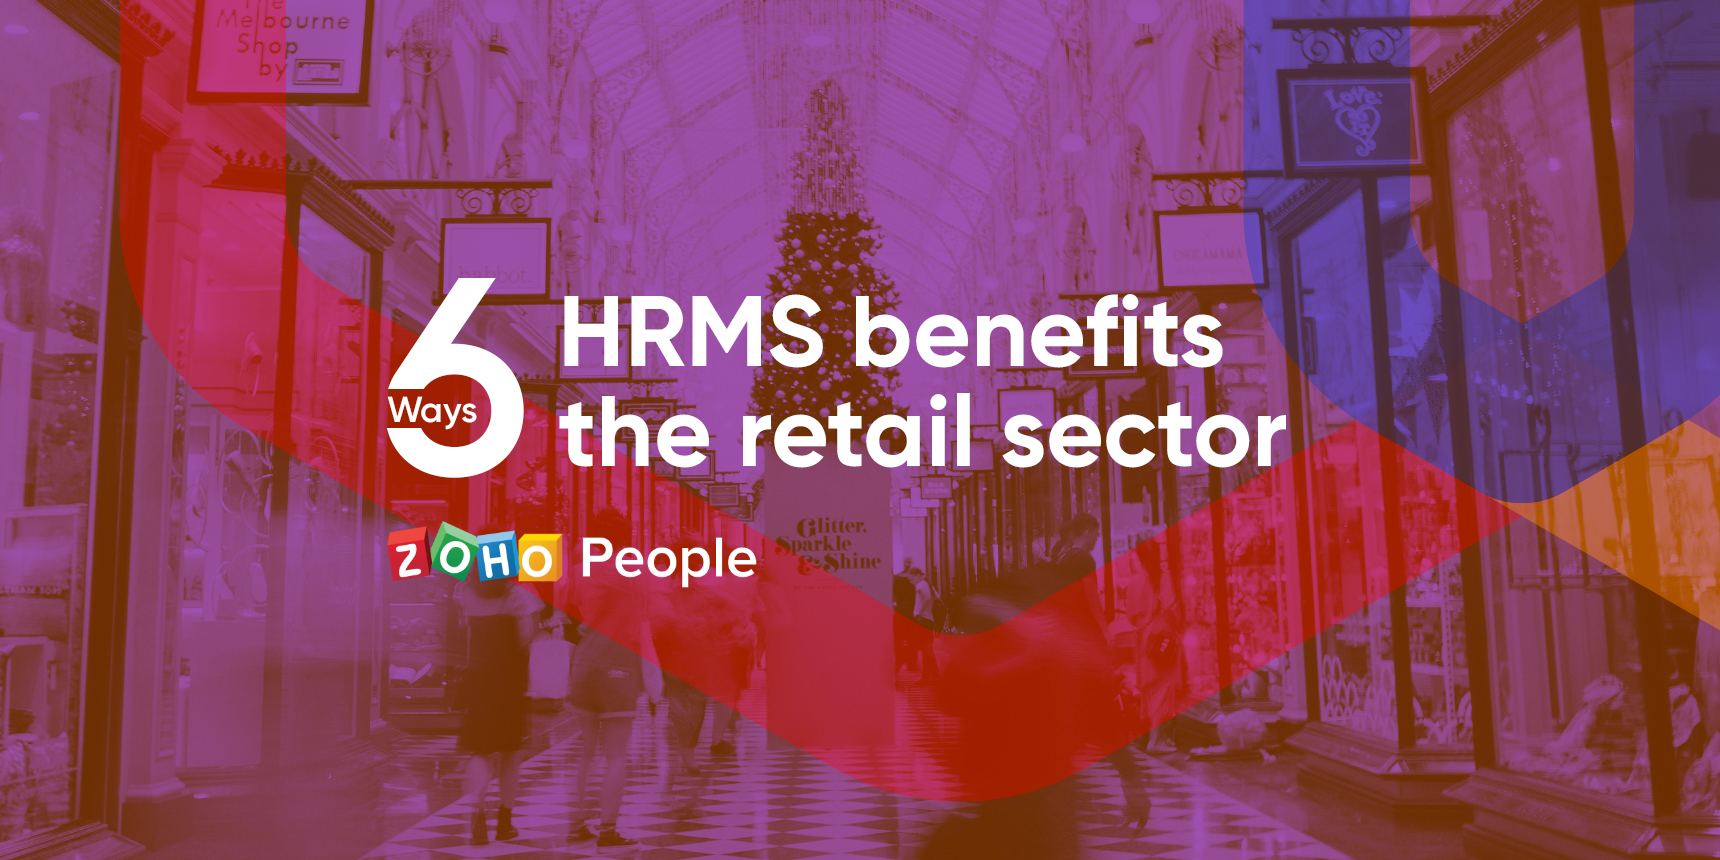 HRMS for the retail sector